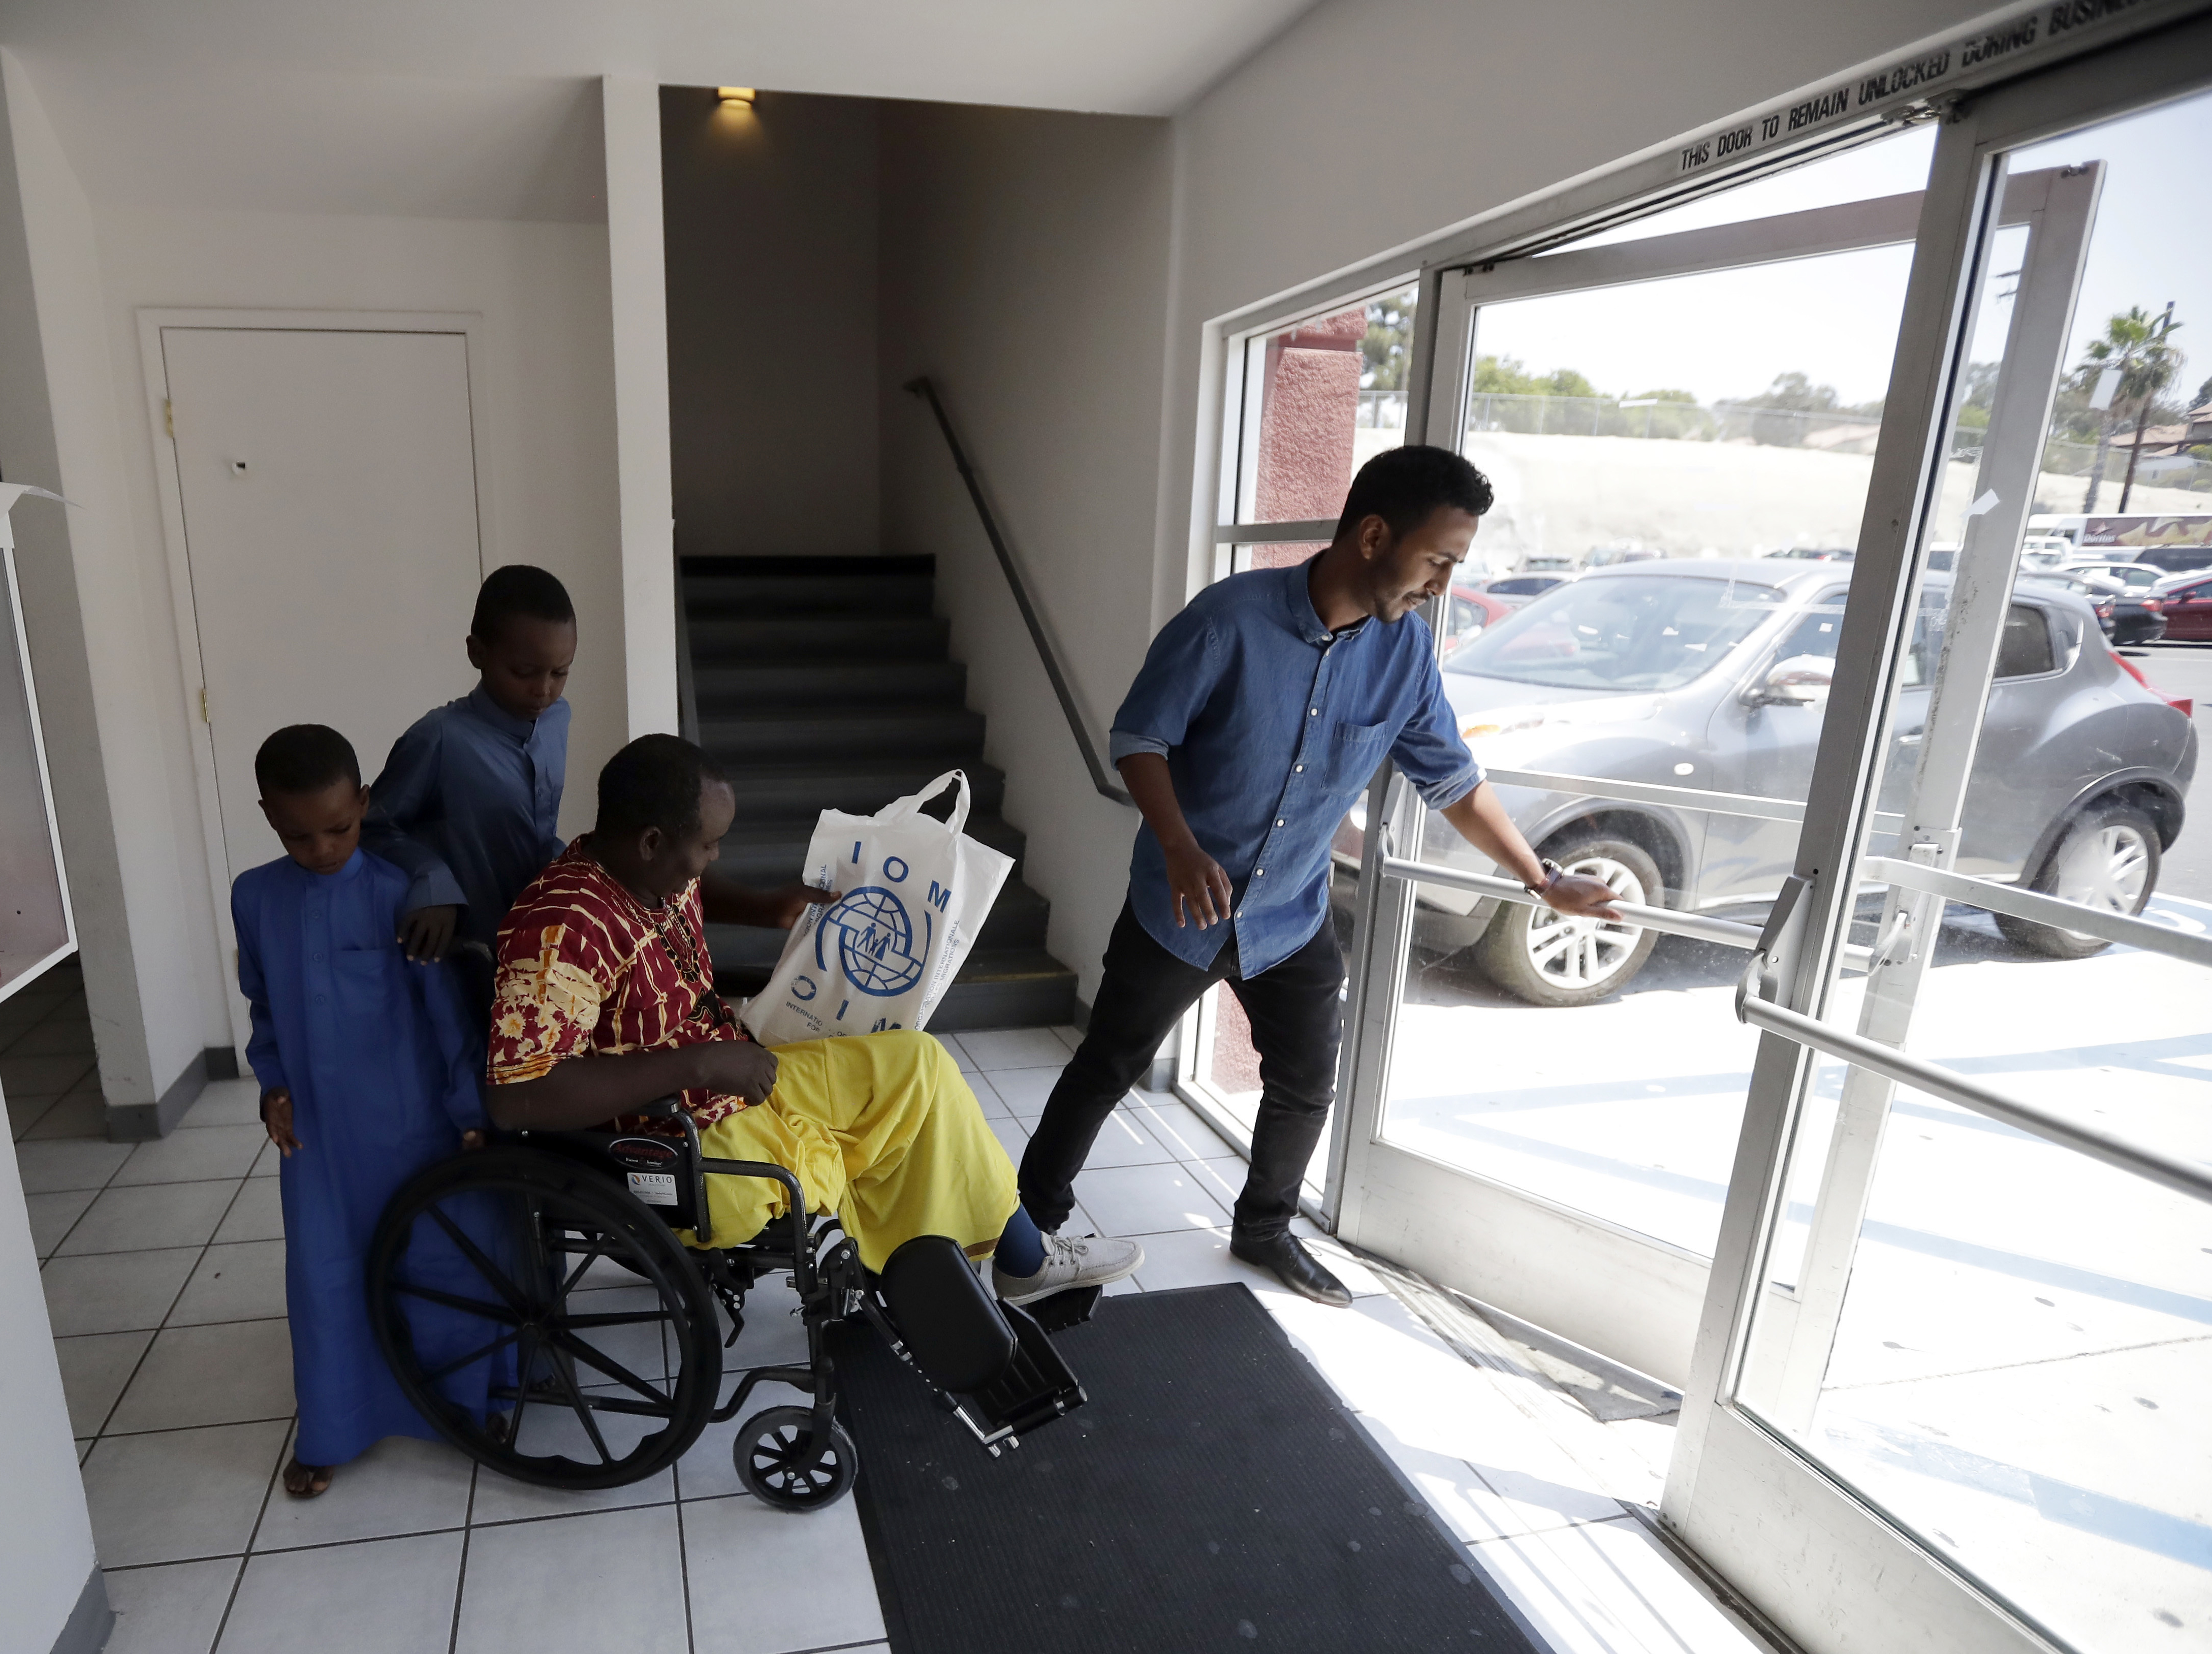 FILE - In this July 6, 2017, file photo, Ali Said, of Somalia, center, leaves a center for refugees with his two sons, as refugee caseworker Mohamed Yassin, right, holds open the door in San Diego. A federal judge in Hawaii further weakened the already-diluted travel ban Thursday, July 13, 2017, by vastly expanding the list of U.S. family relationships that visitors from six Muslim-majority countries can use to get into the country. (AP Photo/Gregory Bull, File)